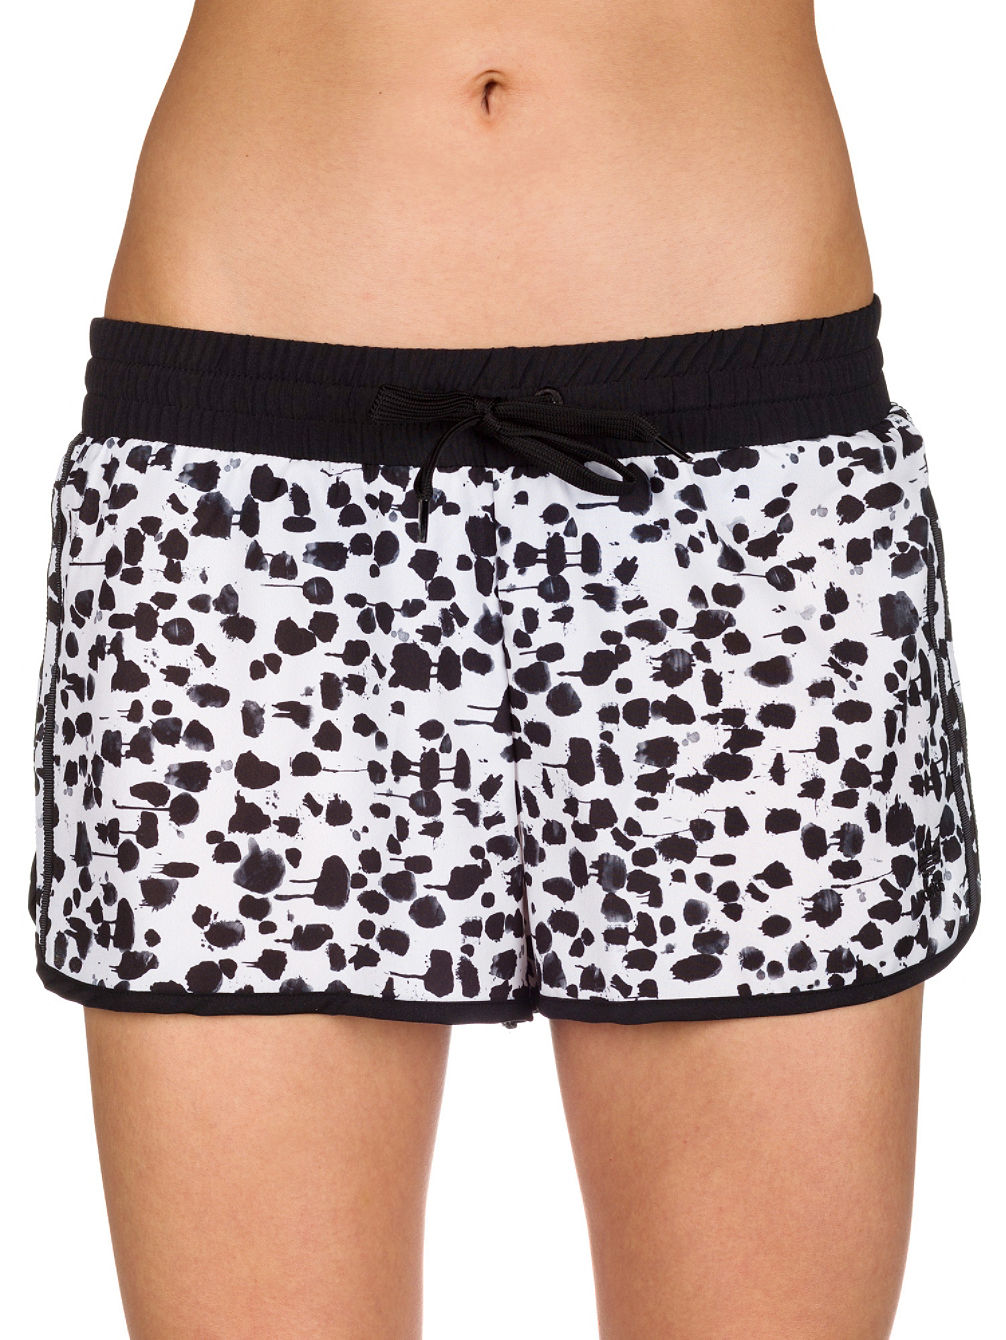 Inked Pack Shorts